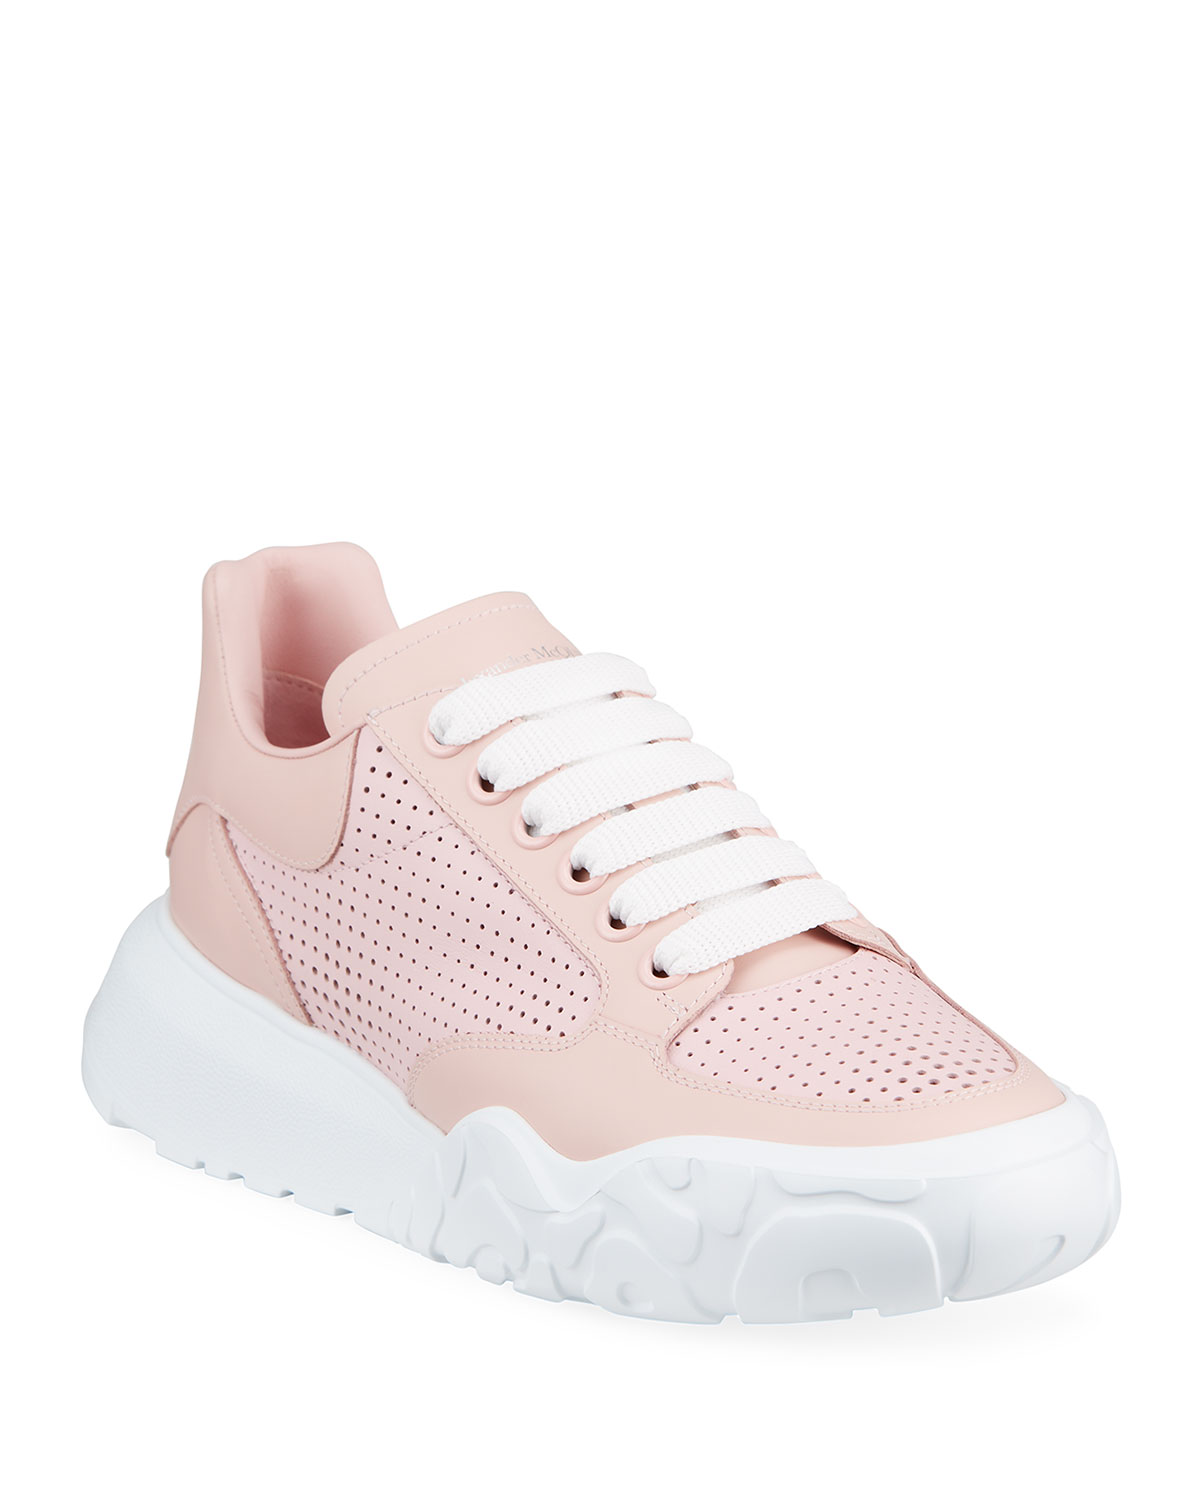 Alexander Mcqueen Leathers PERFORATED CALFSKIN TRAINER SNEAKERS